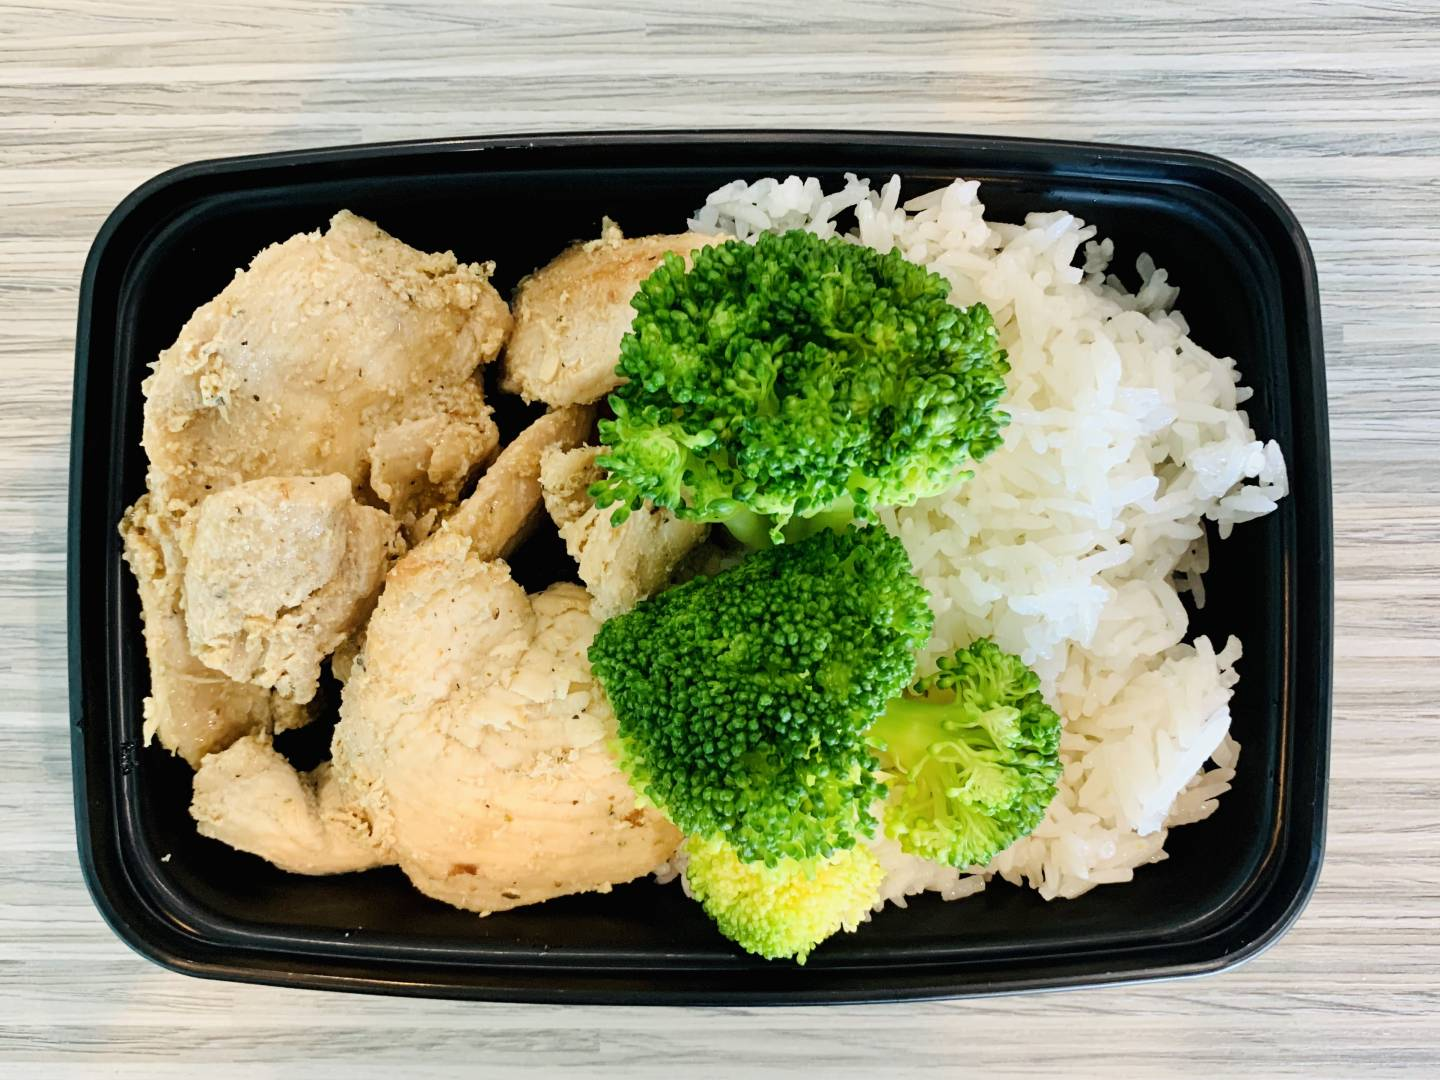 Grilled Chicken, Jasmine Rice and Broccoli